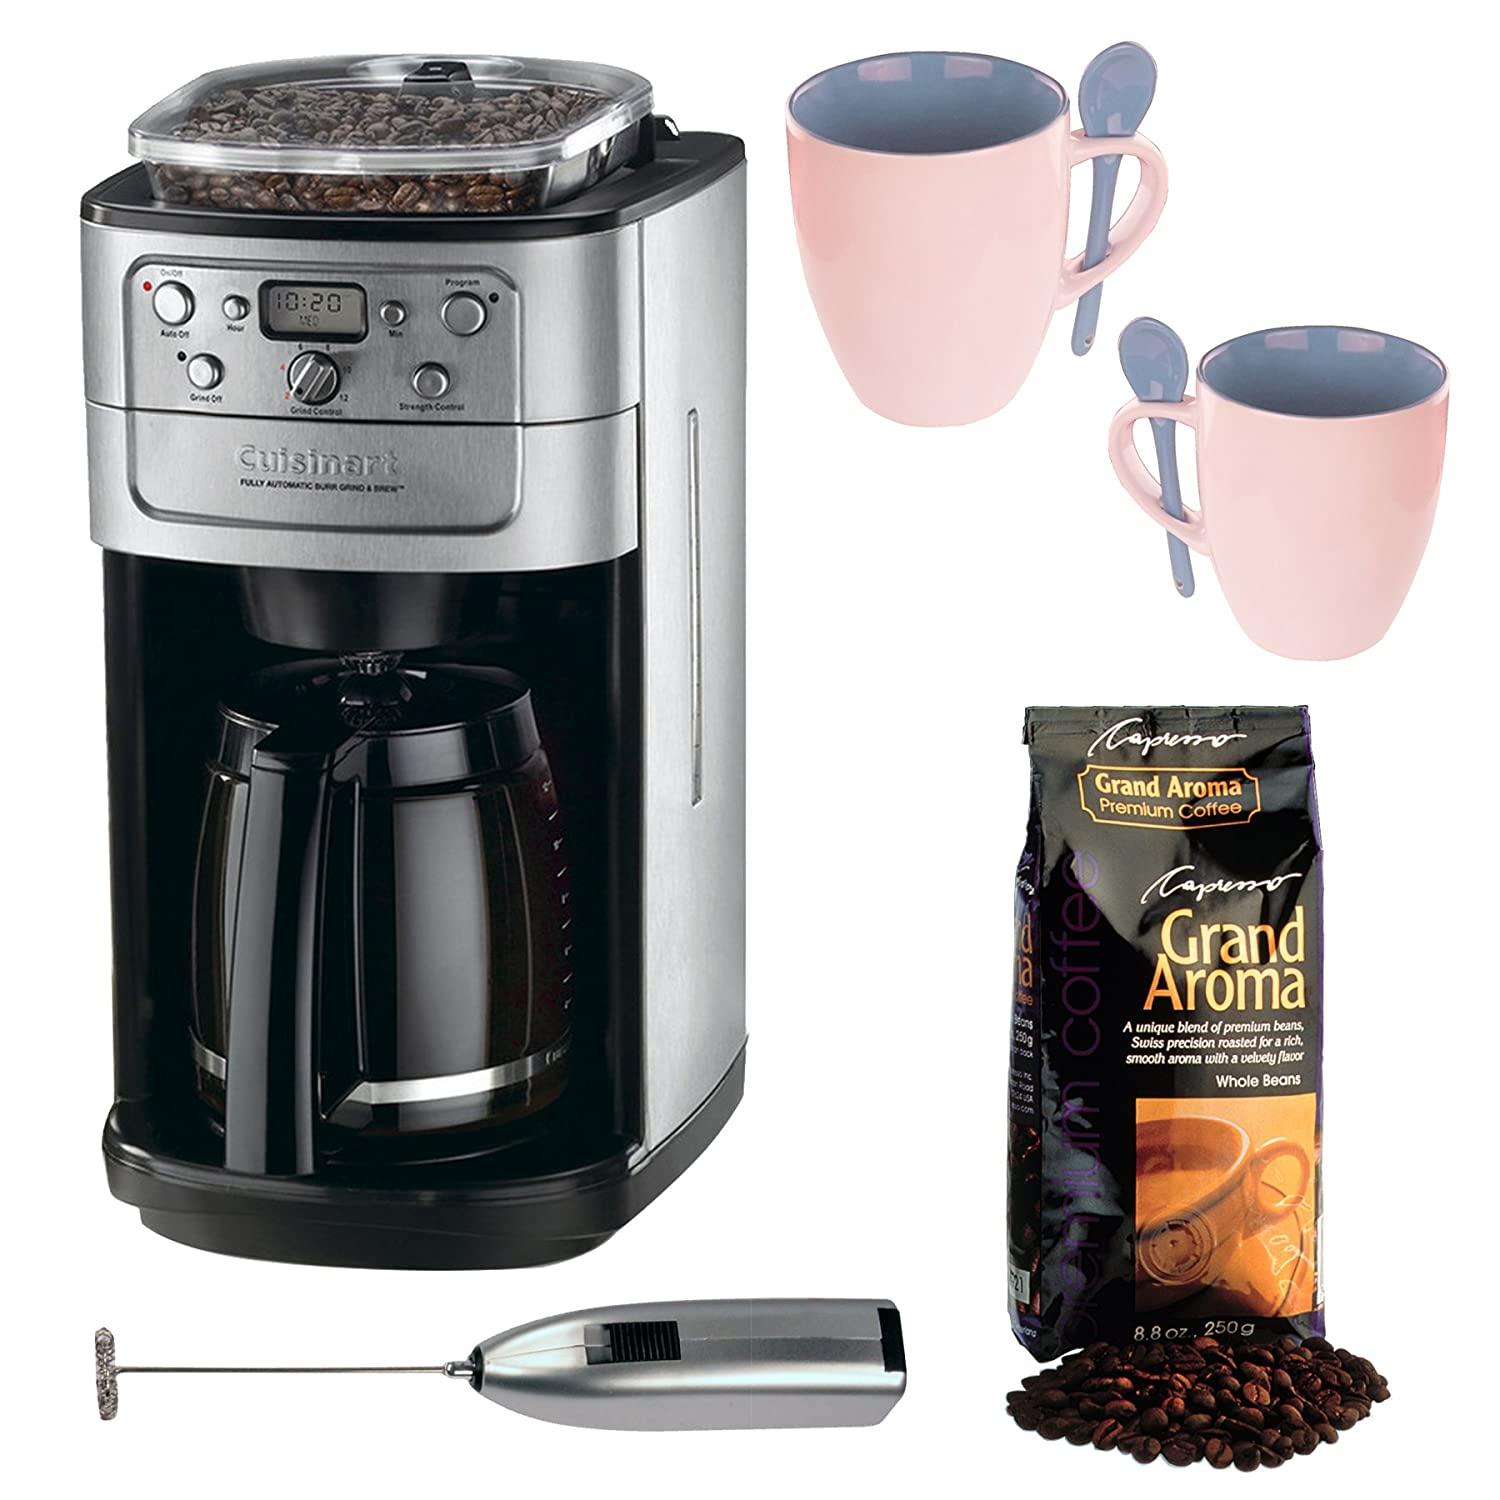 Cuisinart DGB-700BC - best coffee maker with grinder